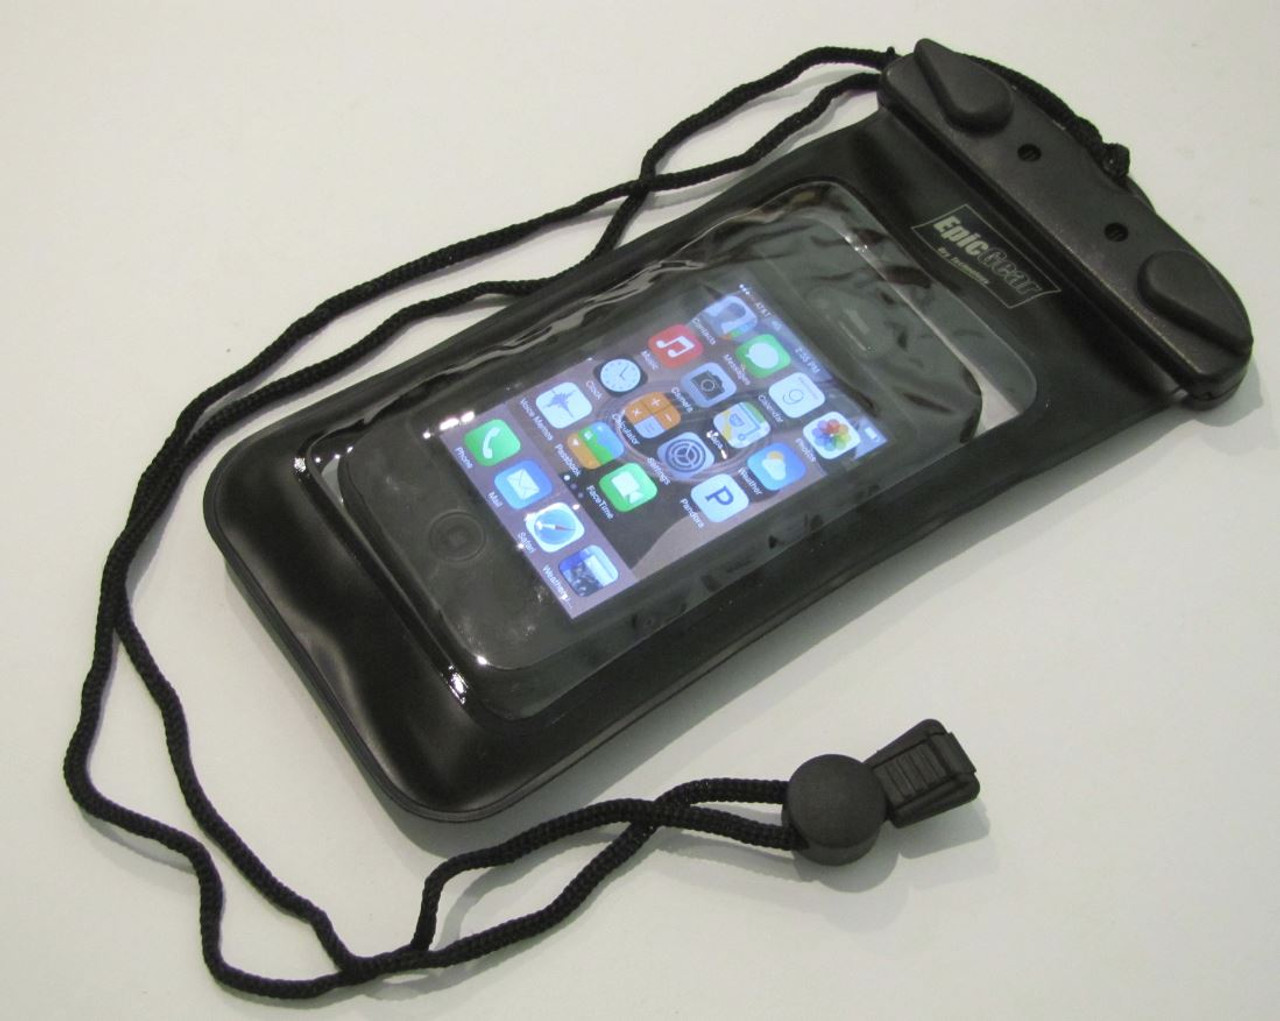 waterproof wallet and cellphone case